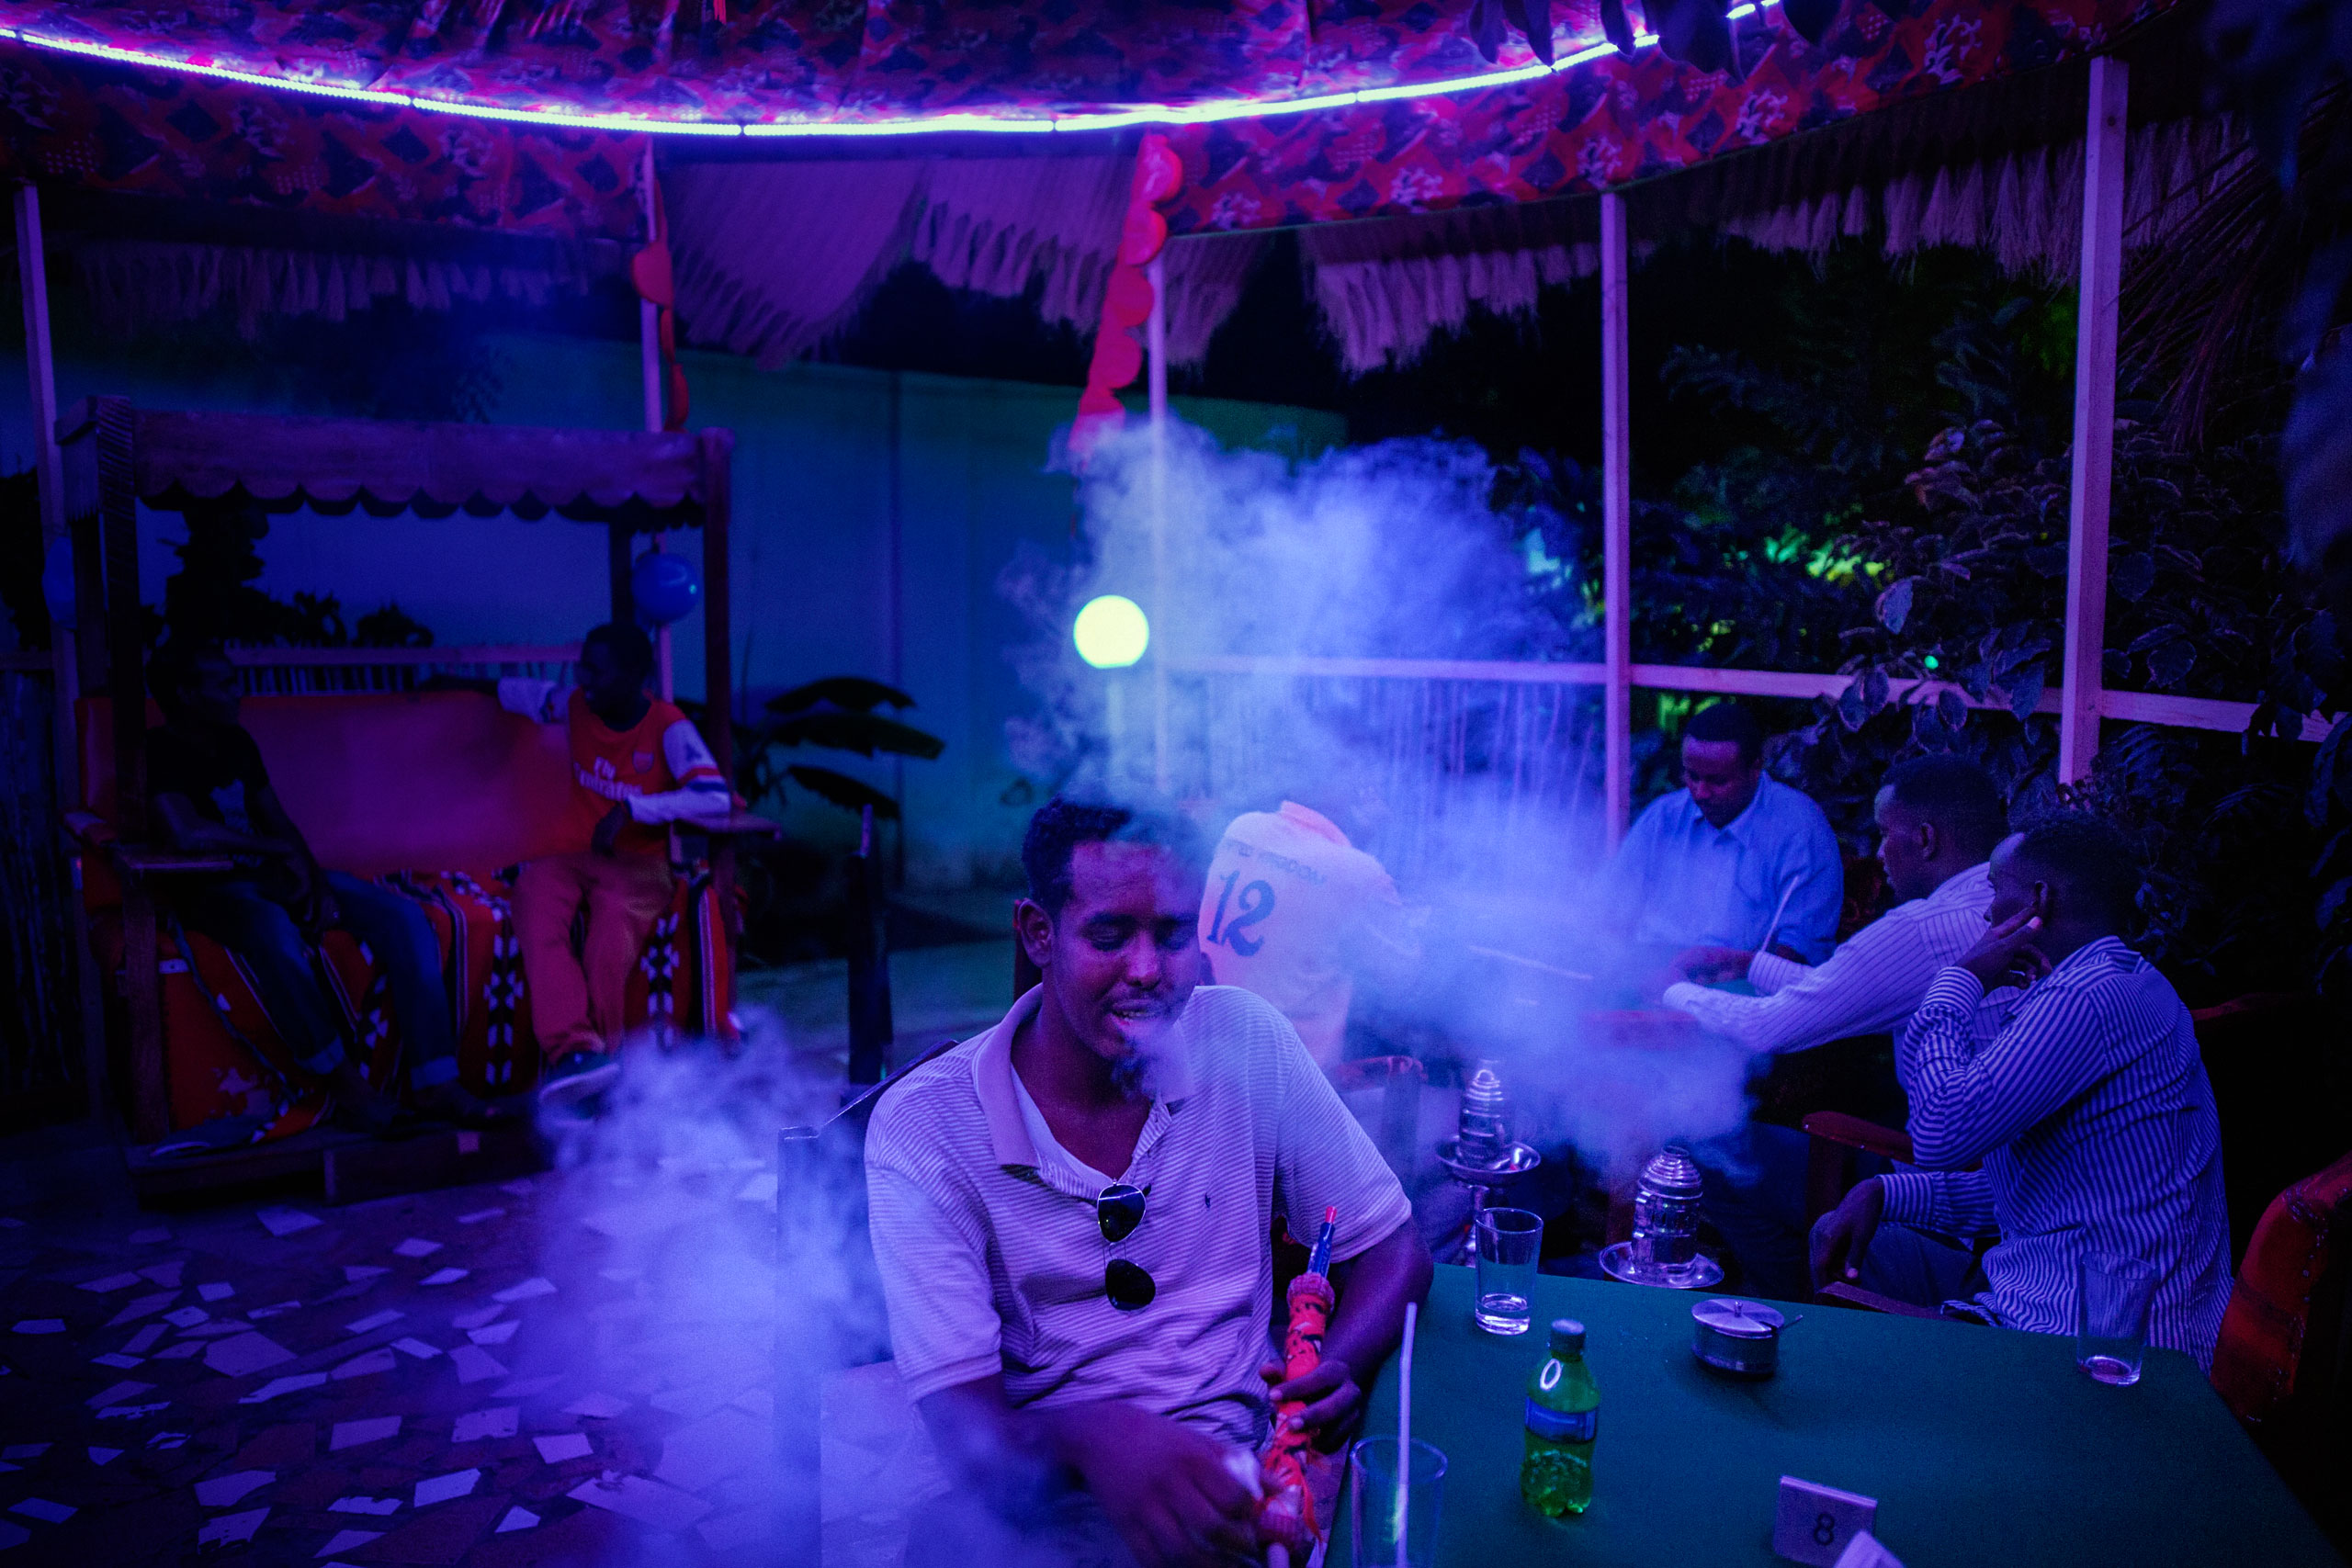 Patrons relax at the Posh Treats, Mogadishu's first country club. Located within a well-protected complex, at Km5, the club opened in January 2015. Manar Moalin, a 33-year-old woman from the Somali diaspora, is the owner.                               The club offers hairdressing services, live music, restaurant and a shisha room, all activities still prohibited in Somalia. Anyone who practices them becomes a target of the Islamic group Al-Shabaab. Mogadishu, Somalia. October 18, 2015.